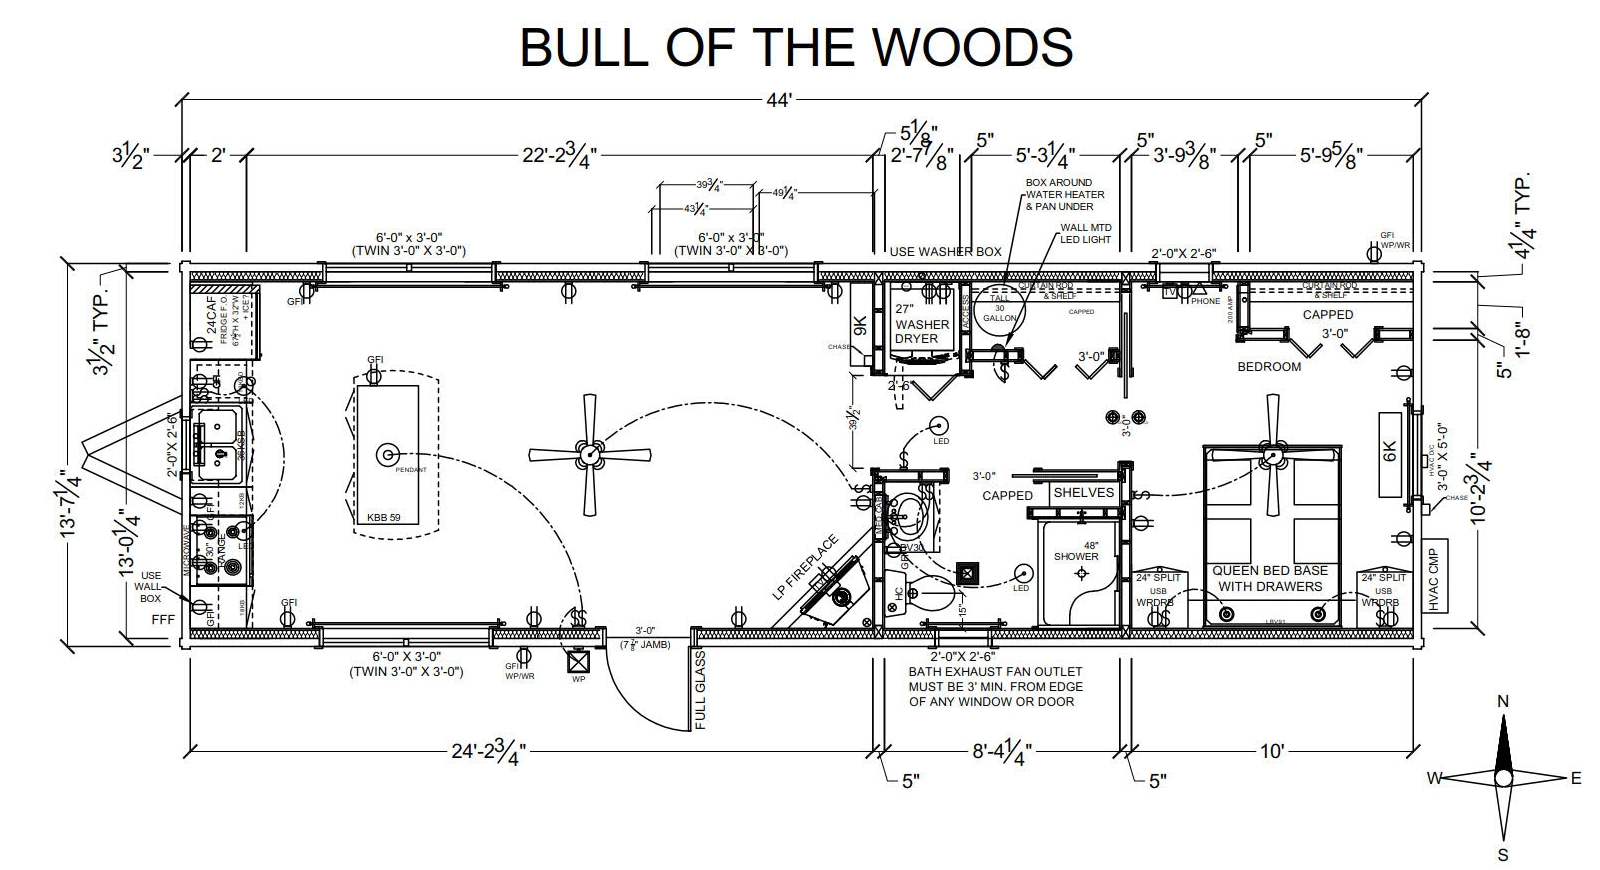 Bull of the Woods - Plan